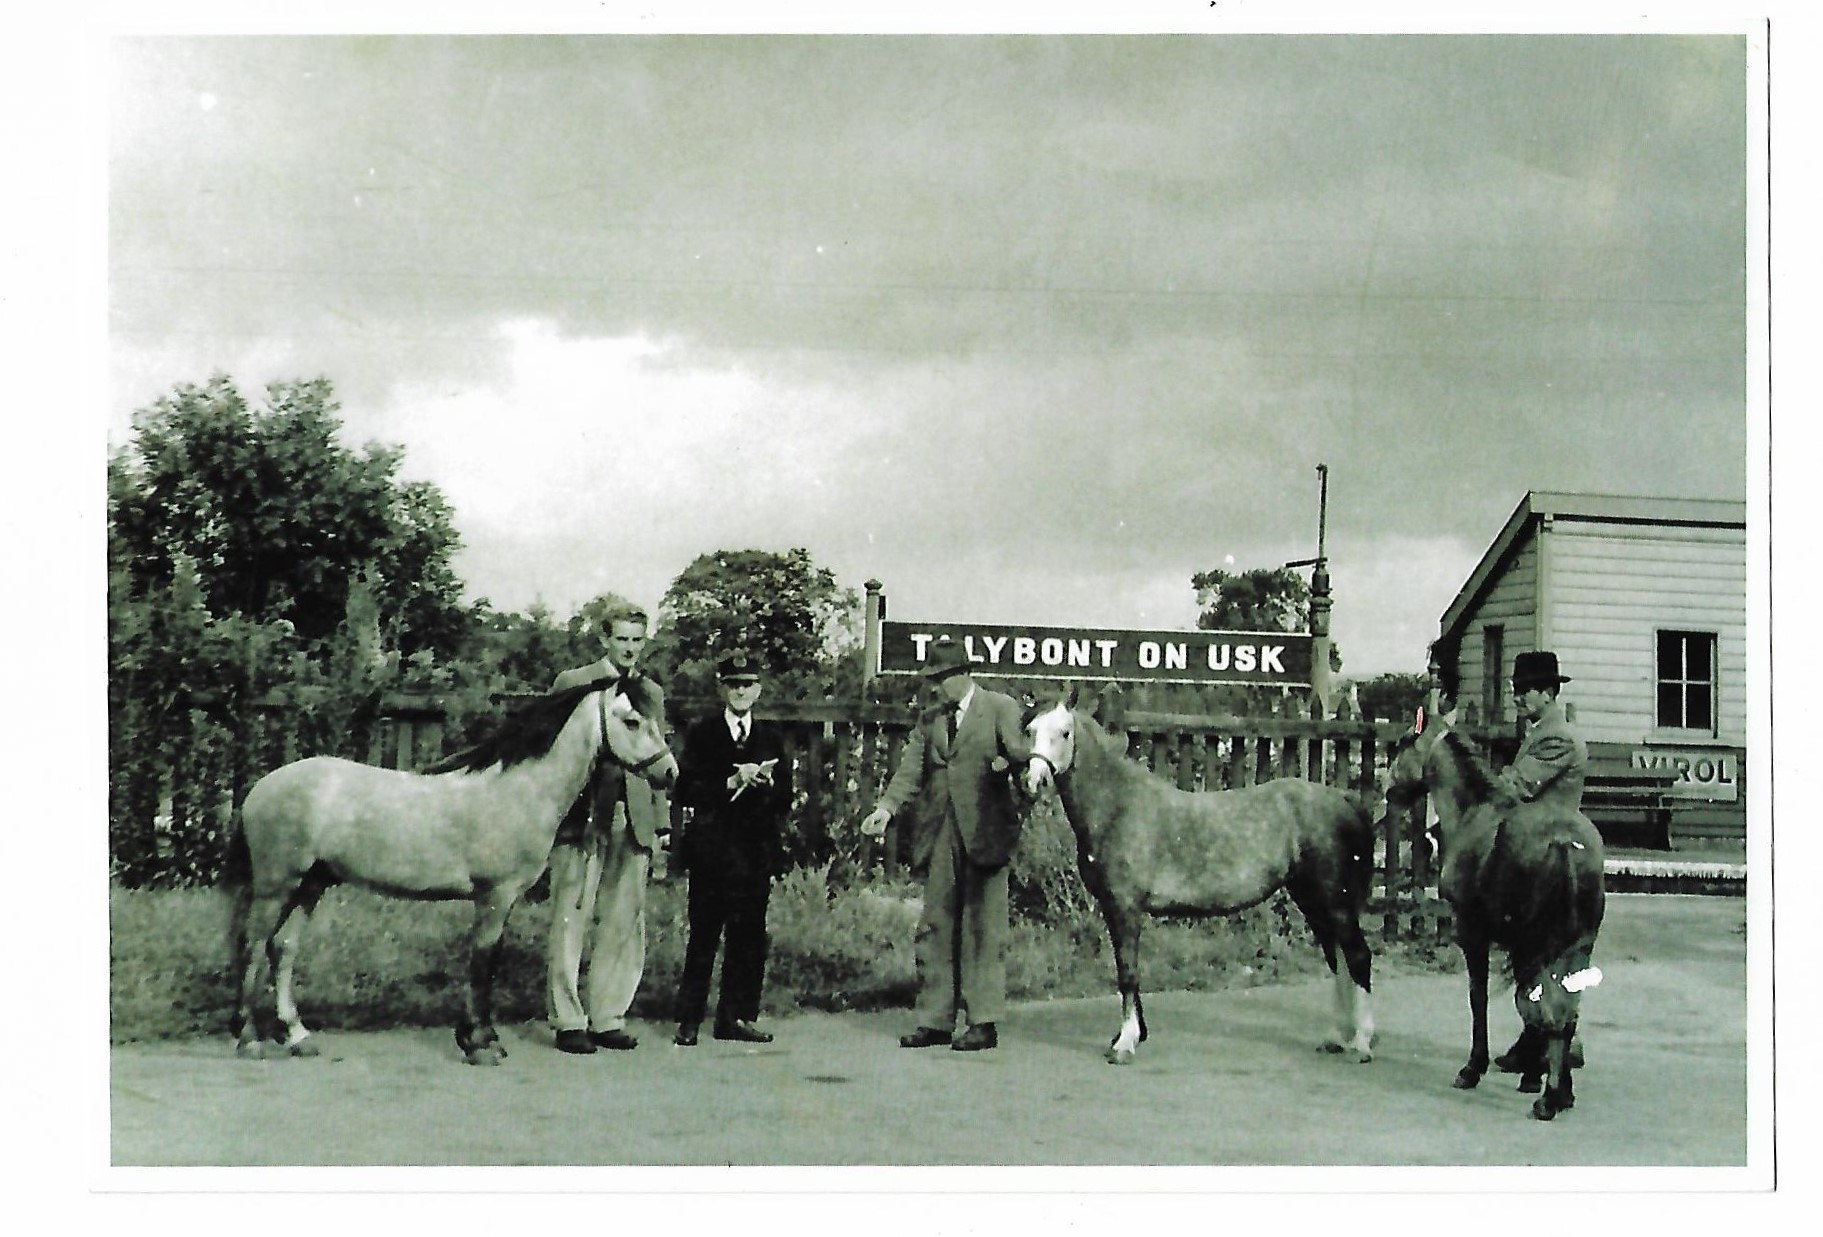 Criban ponies at the station for export abroad